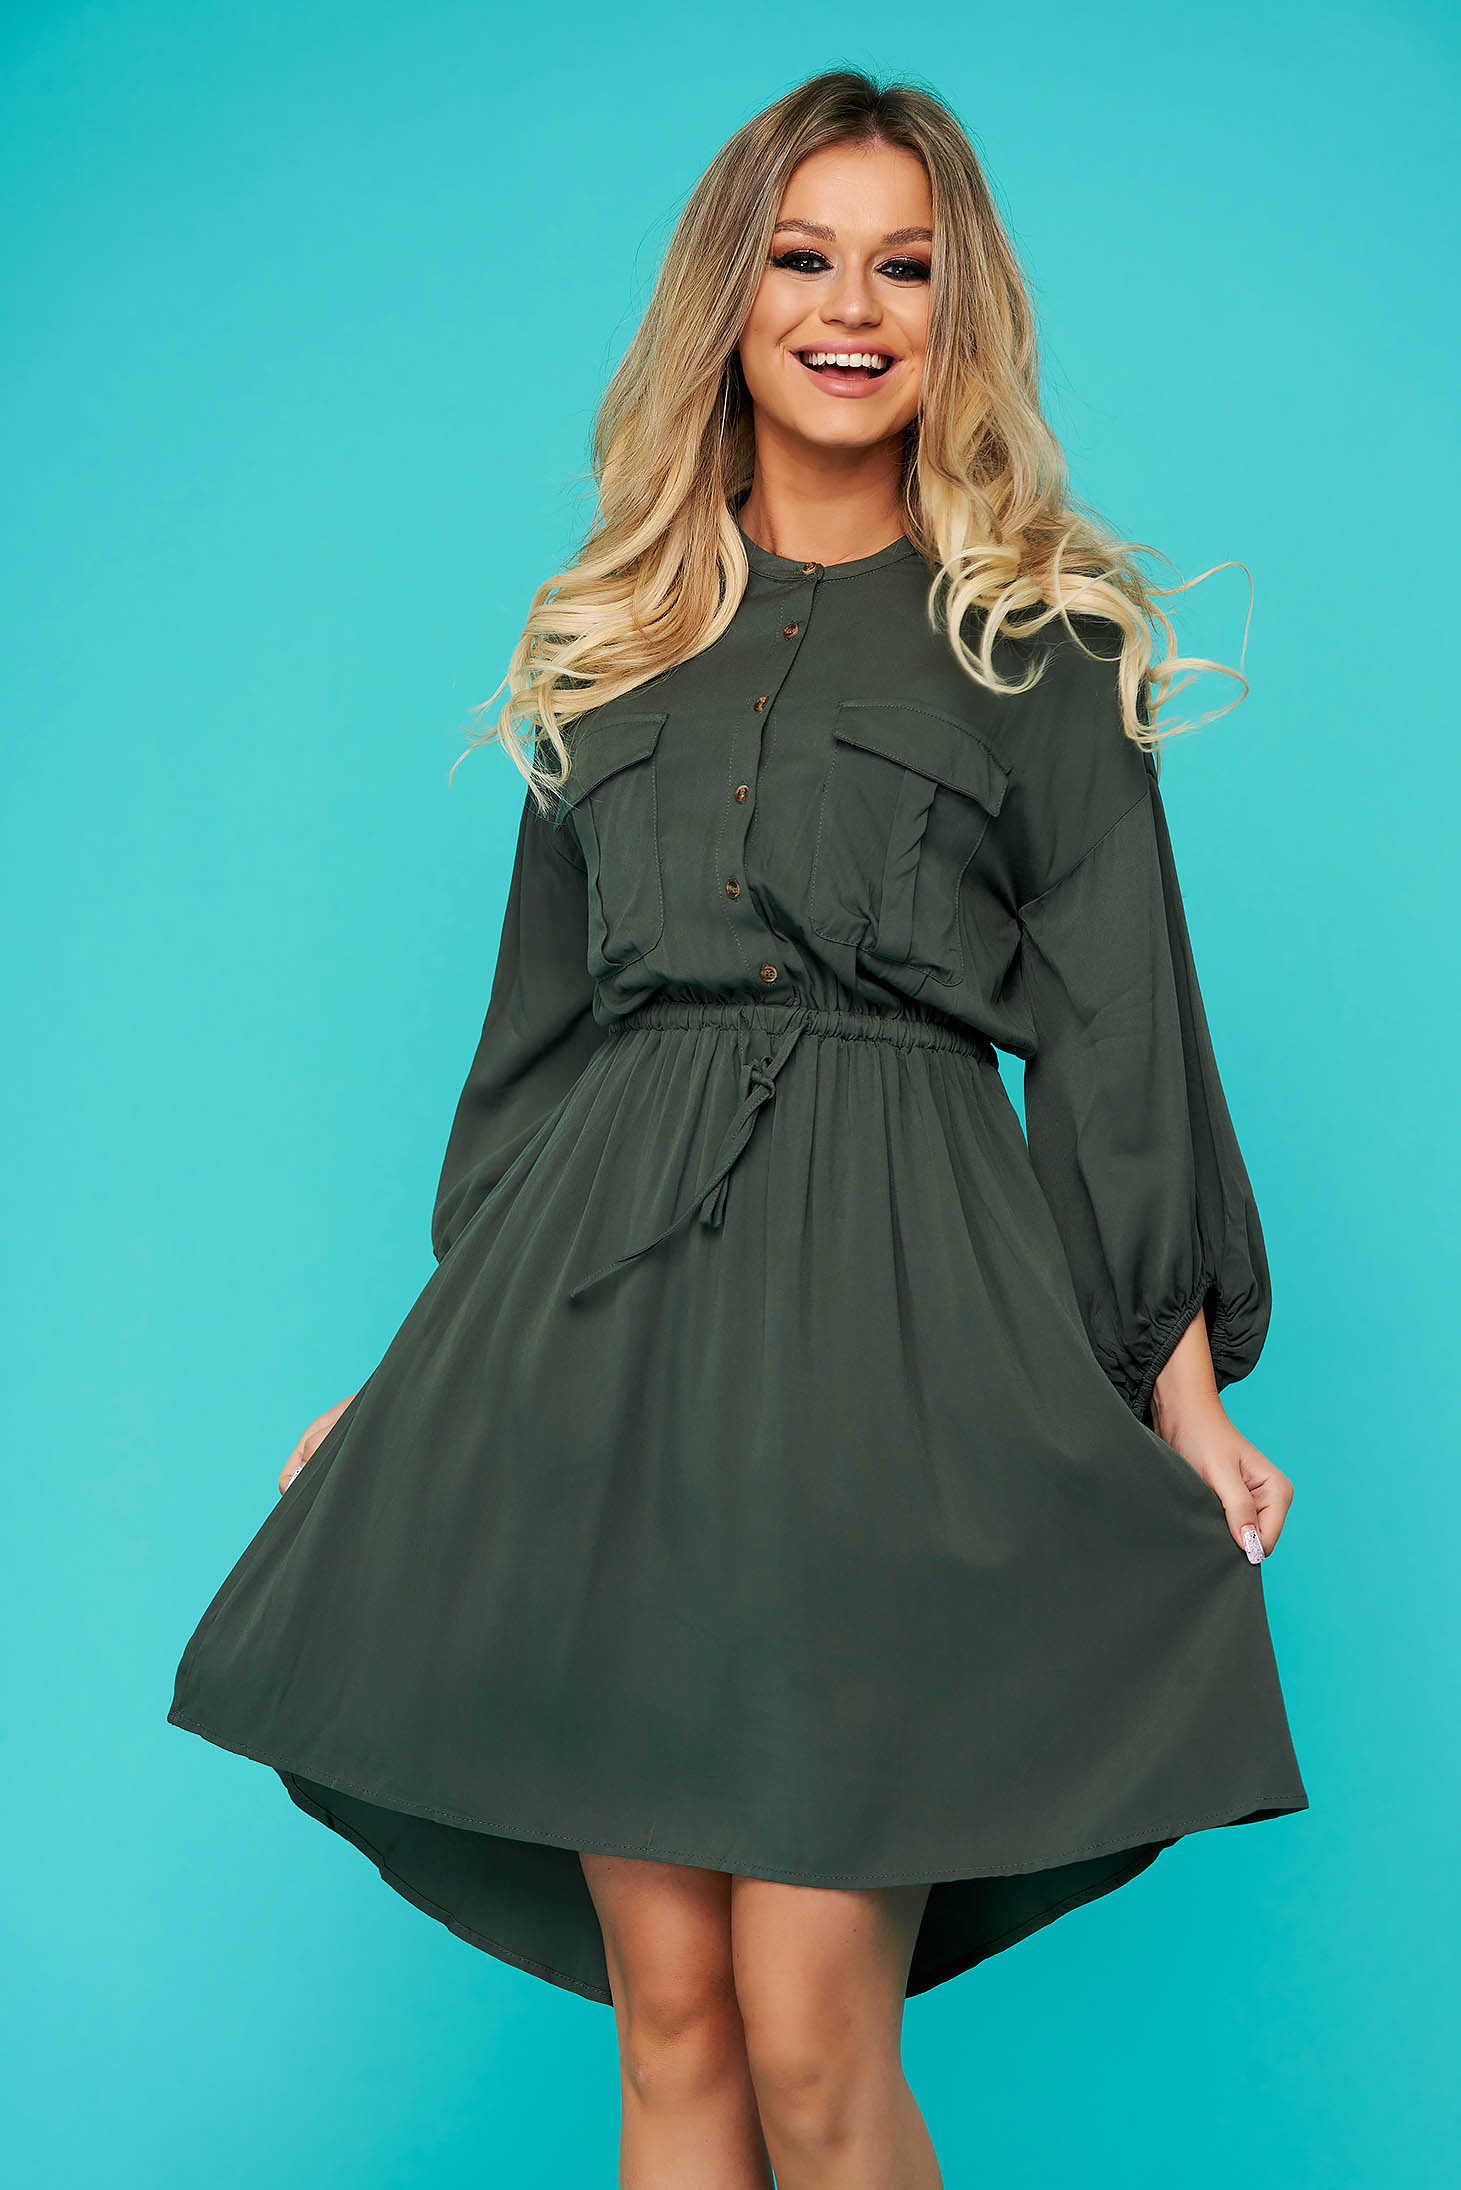 Green dress short cut daily cloche long sleeved with front pockets